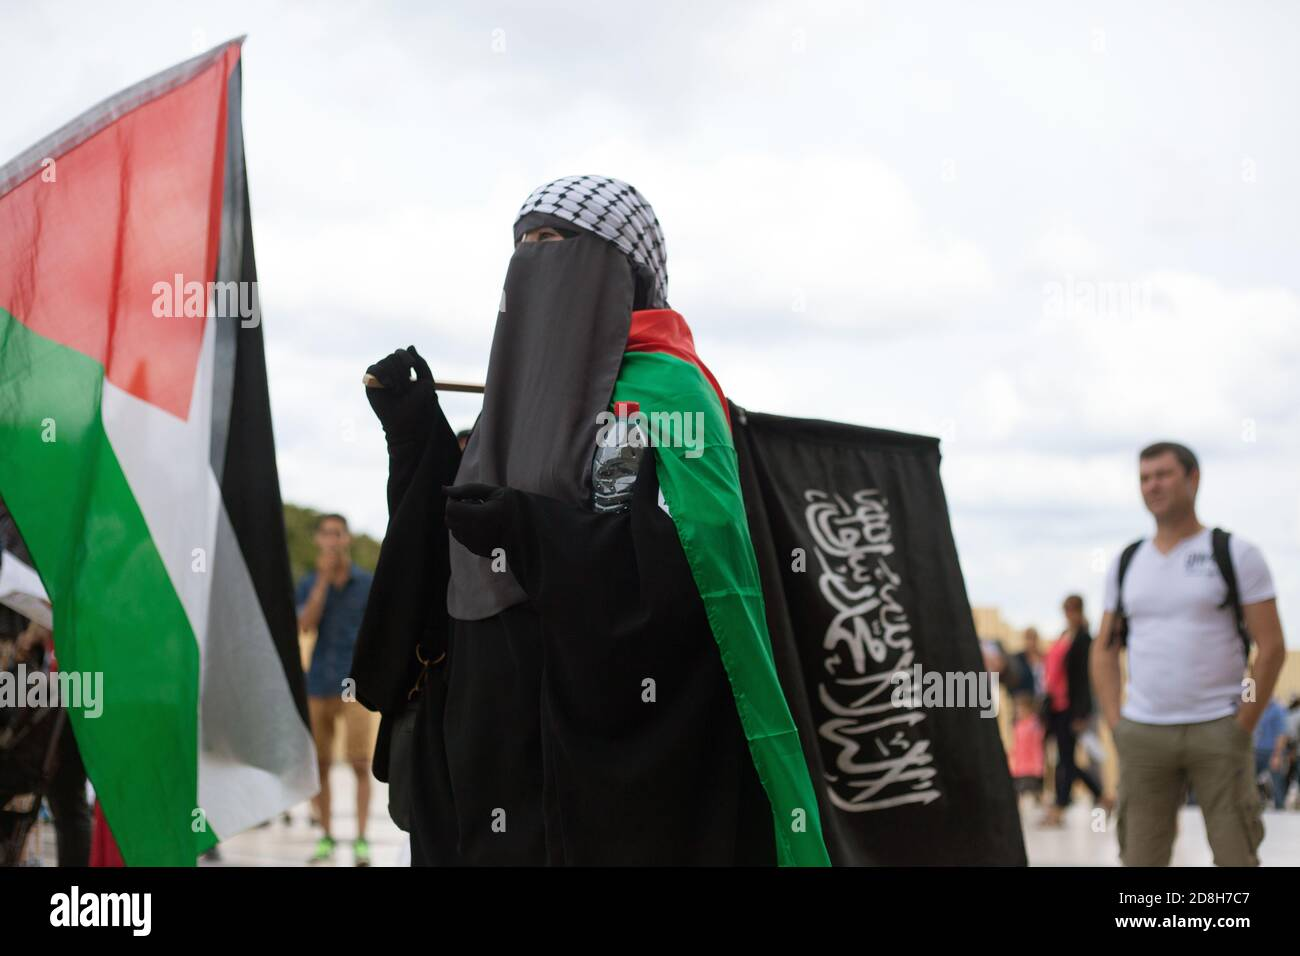 Daeh black flags of the Islamic state in a pro-Palestinian demonstration in Paris Trocadero France Stock Photo